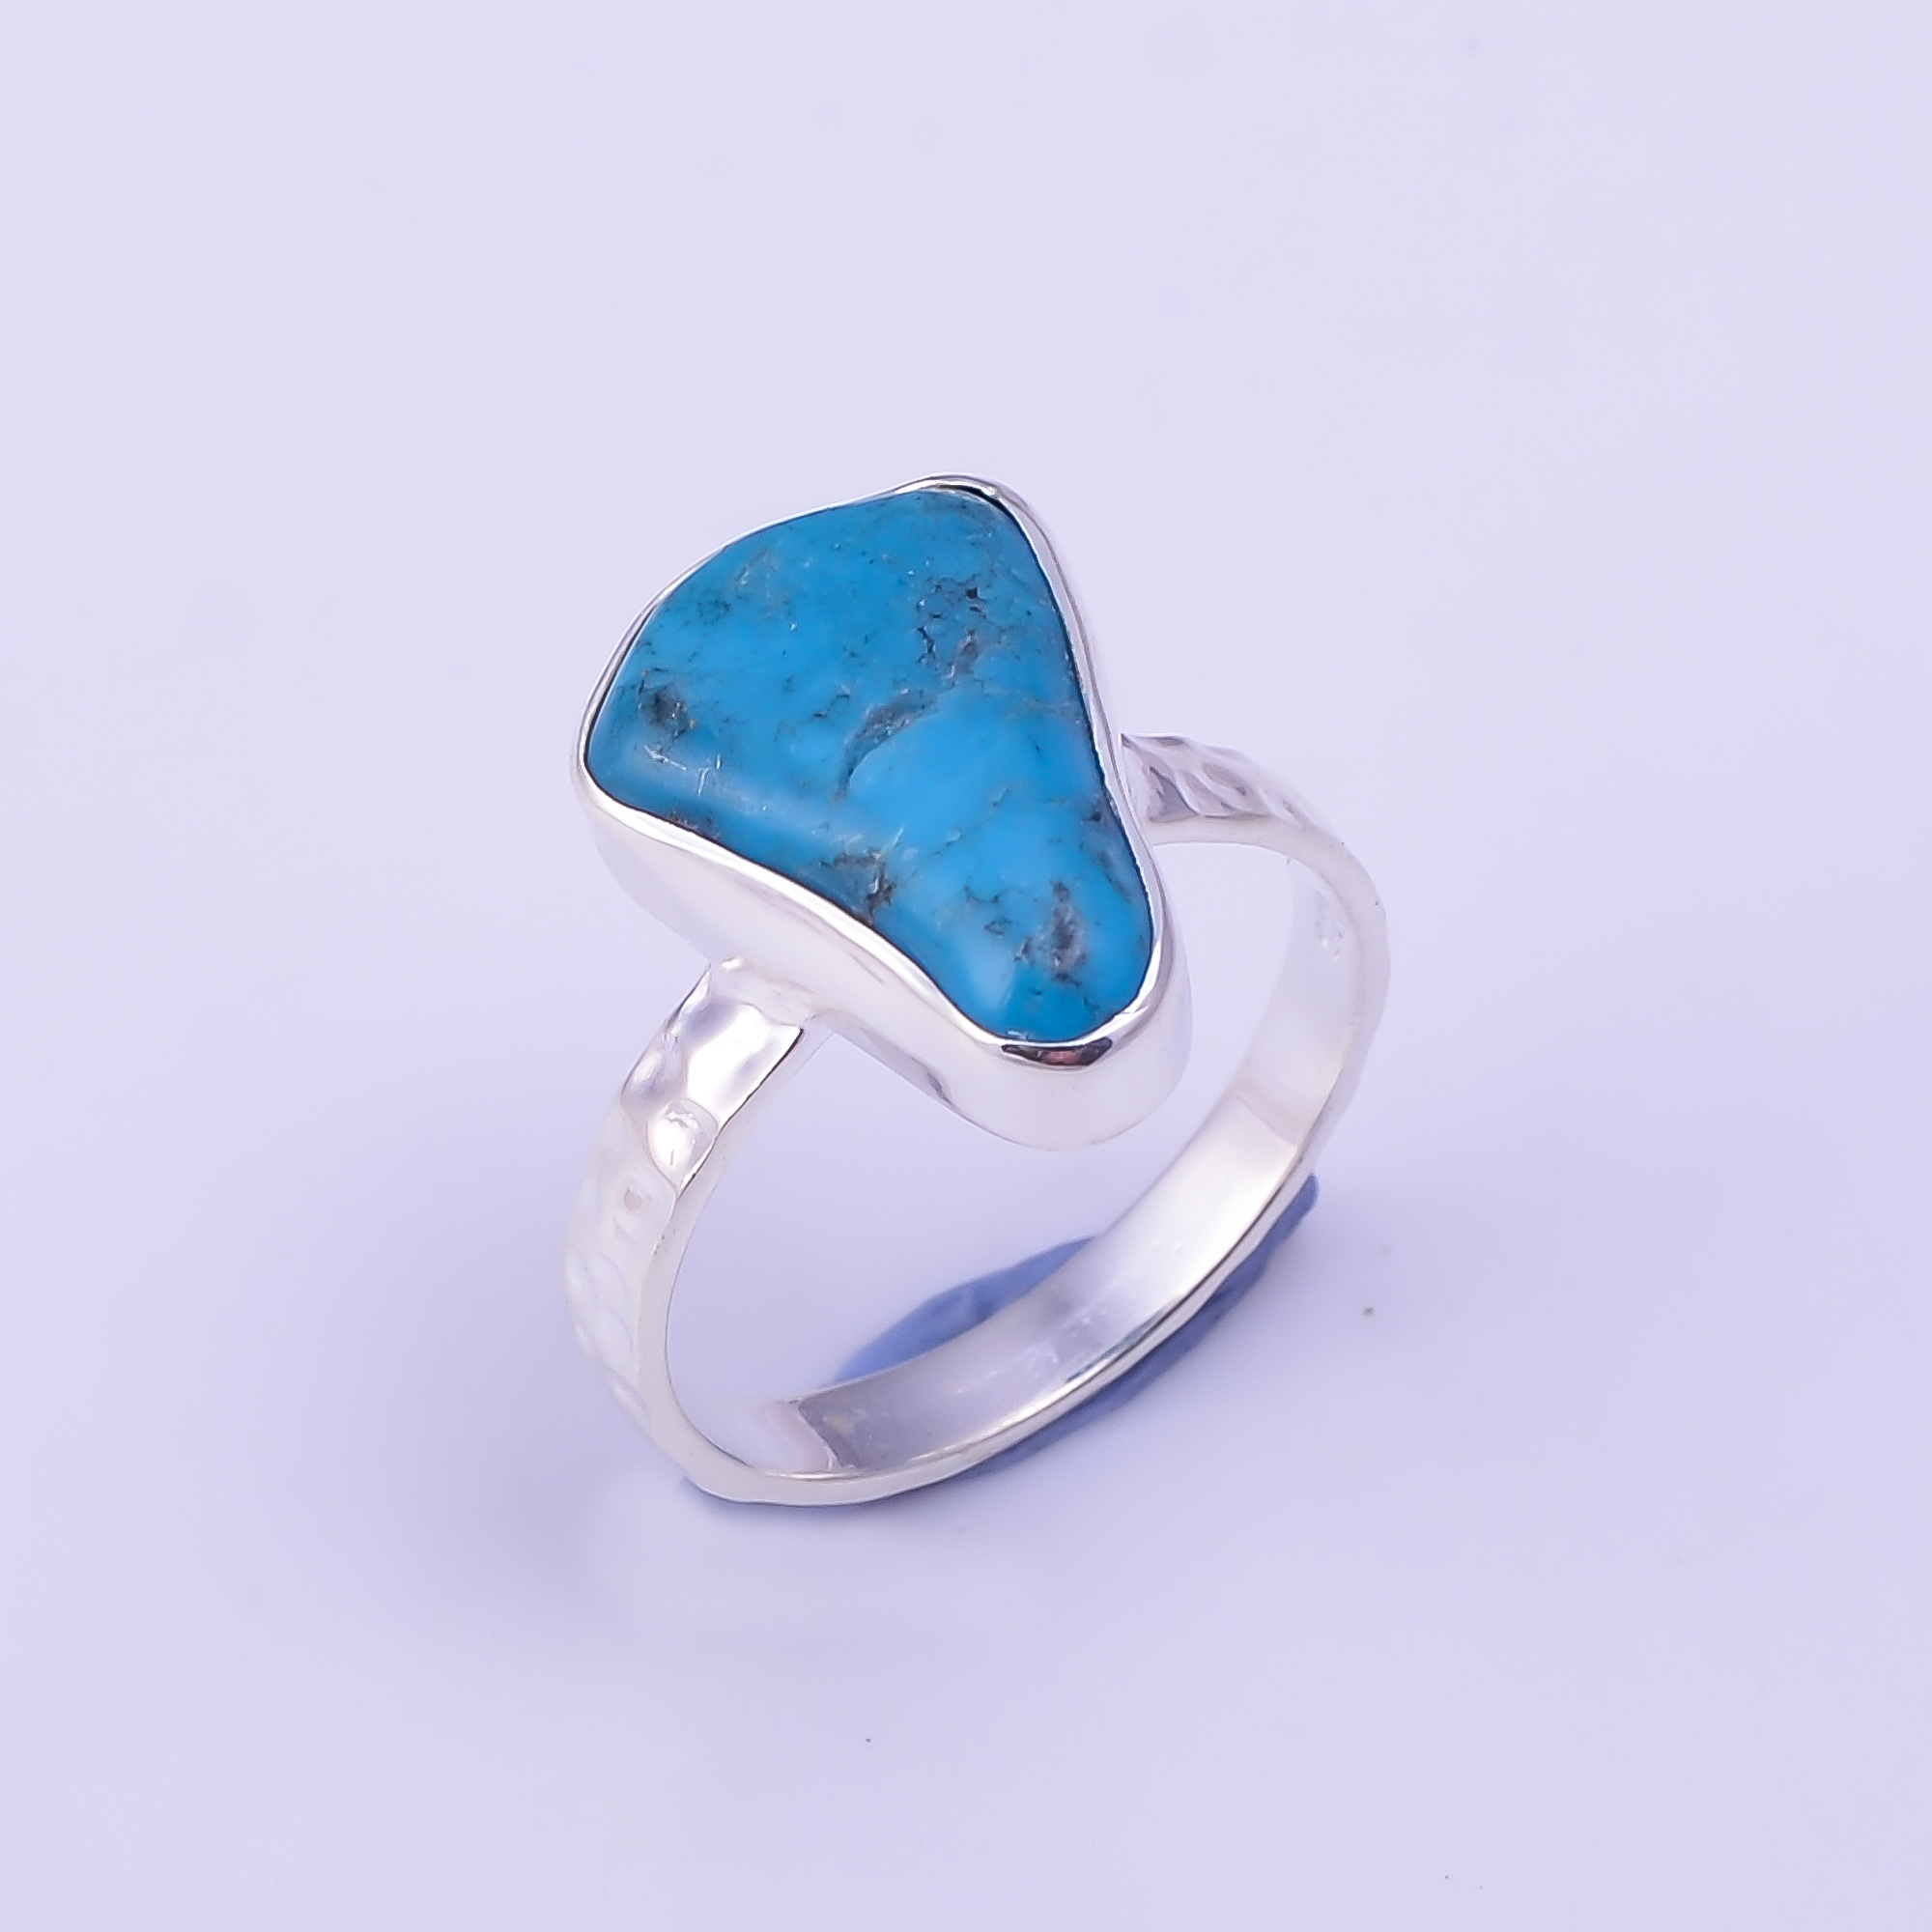 Turquoise Raw Gemstone 925 Sterling Silver Hammered Ring Size US 5.75